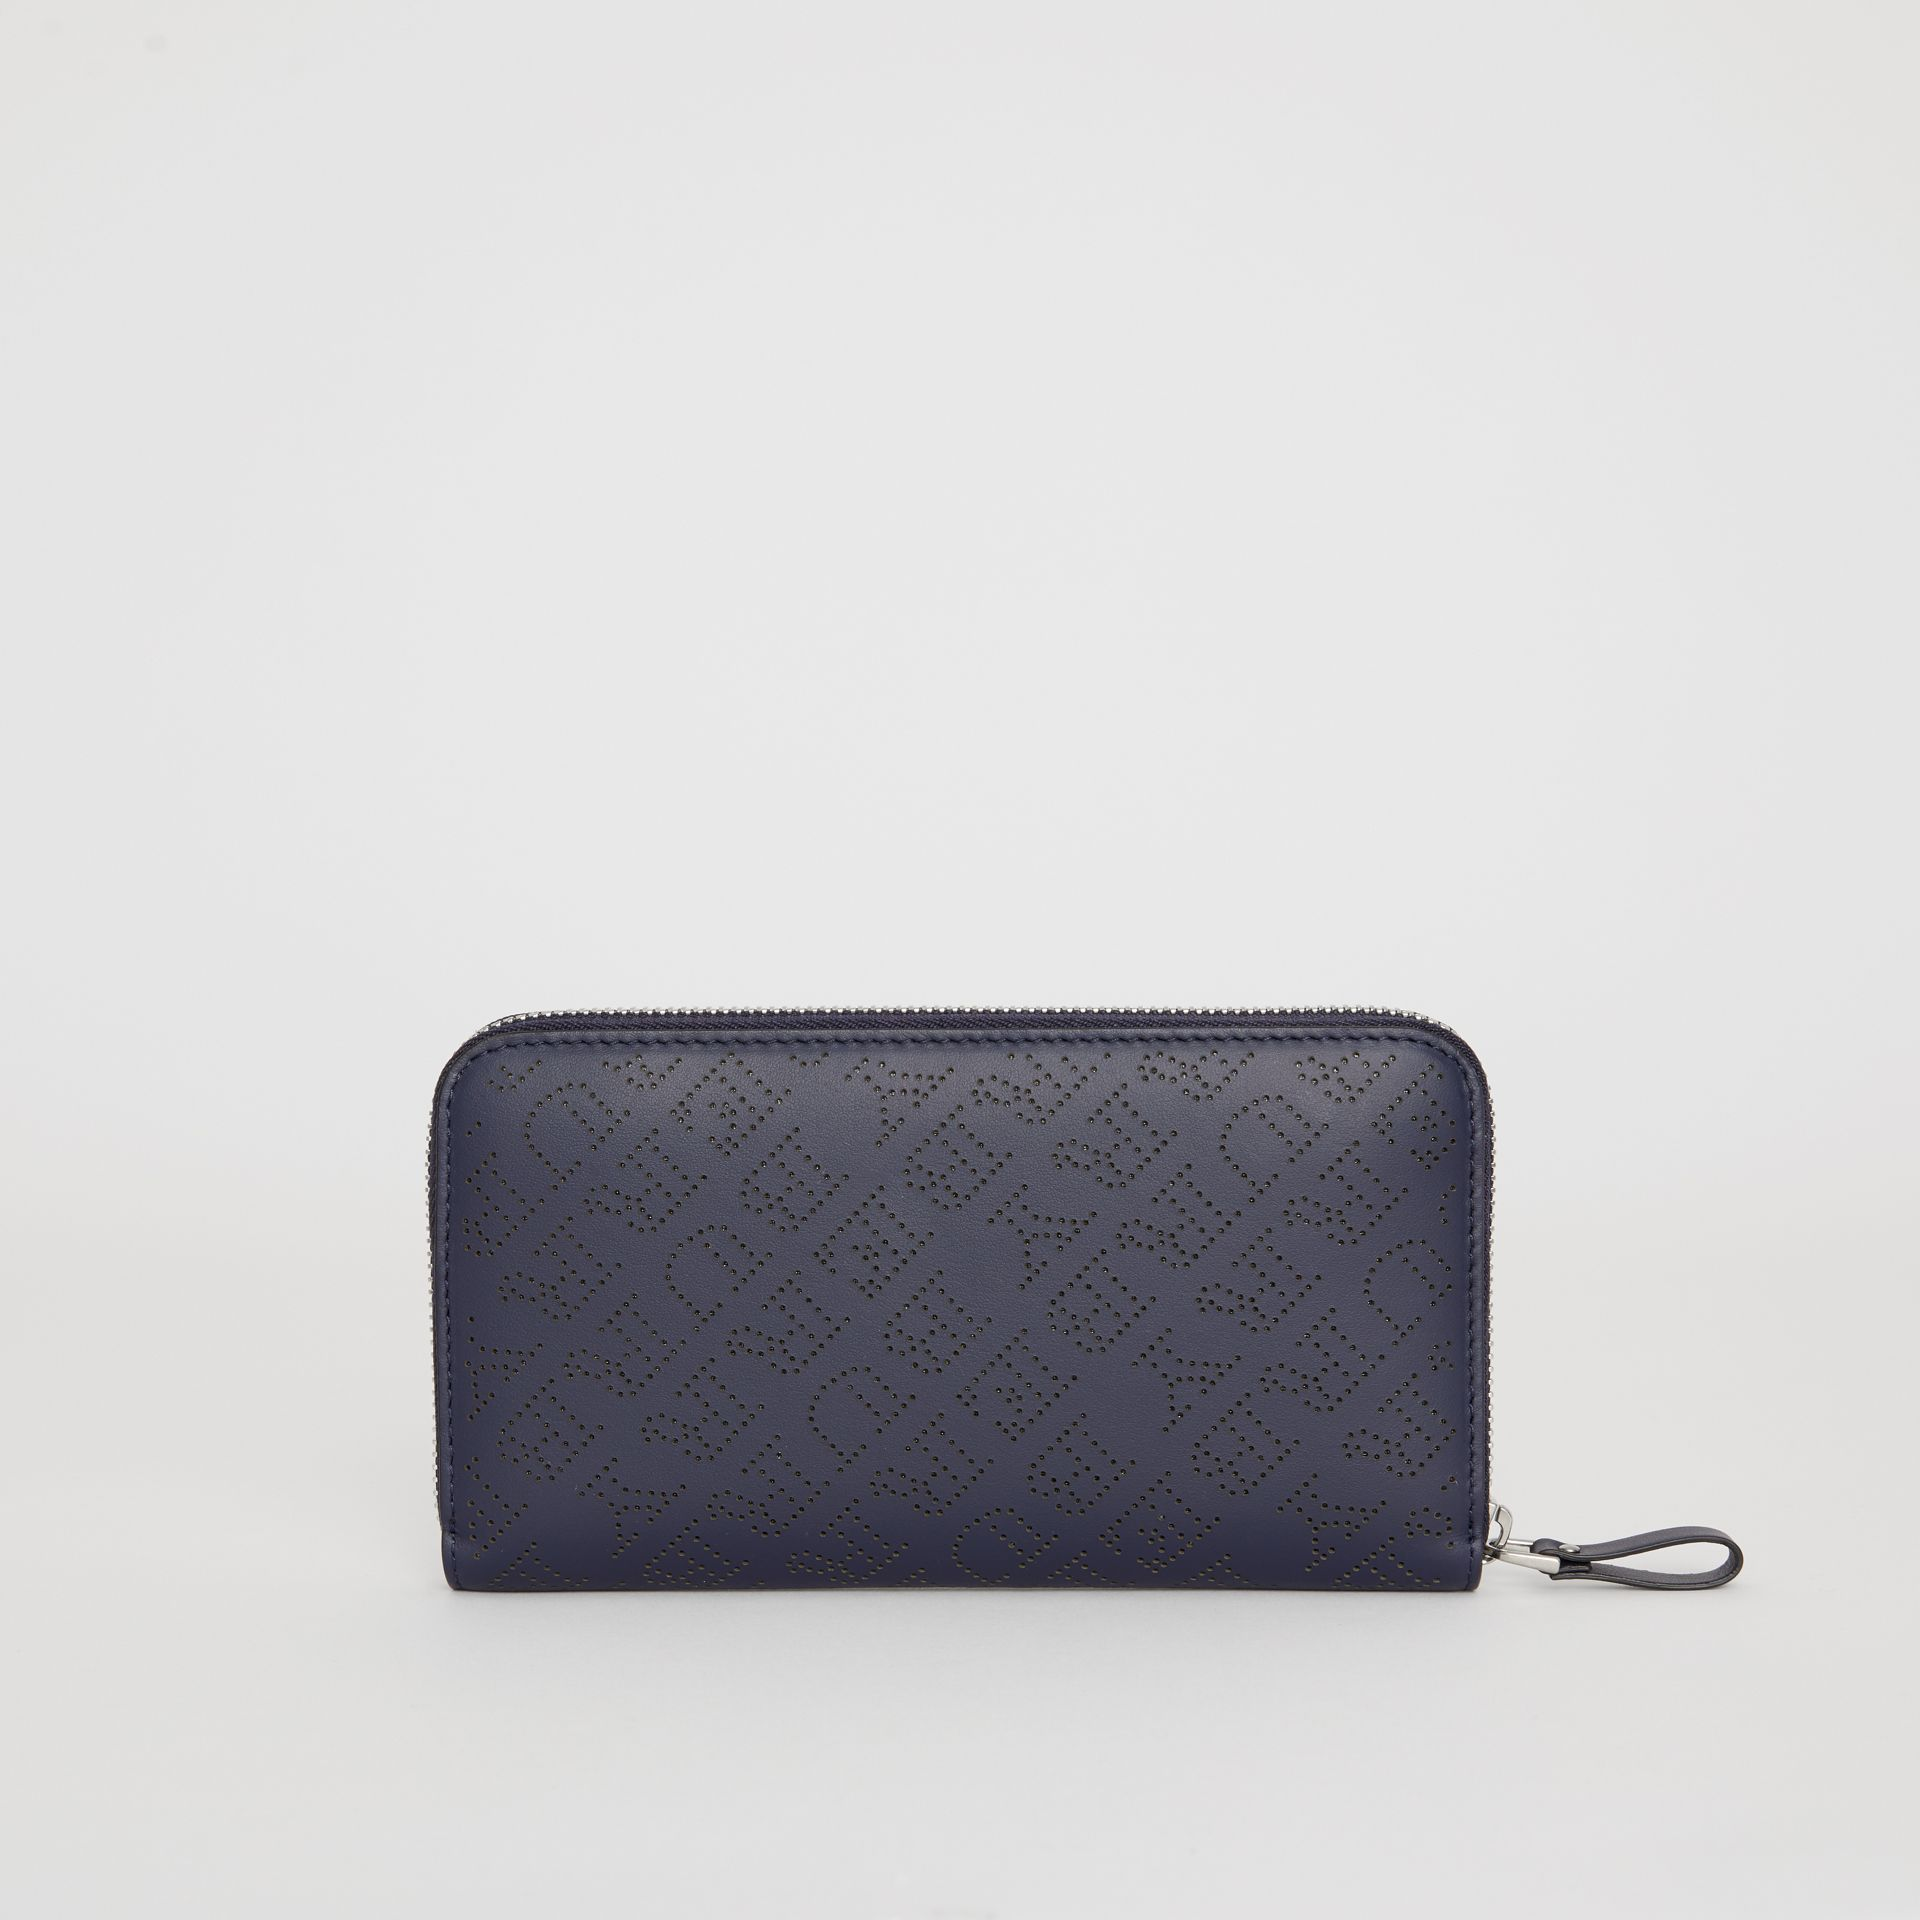 Perforated Leather Ziparound Wallet in Navy - Women | Burberry Australia - gallery image 5